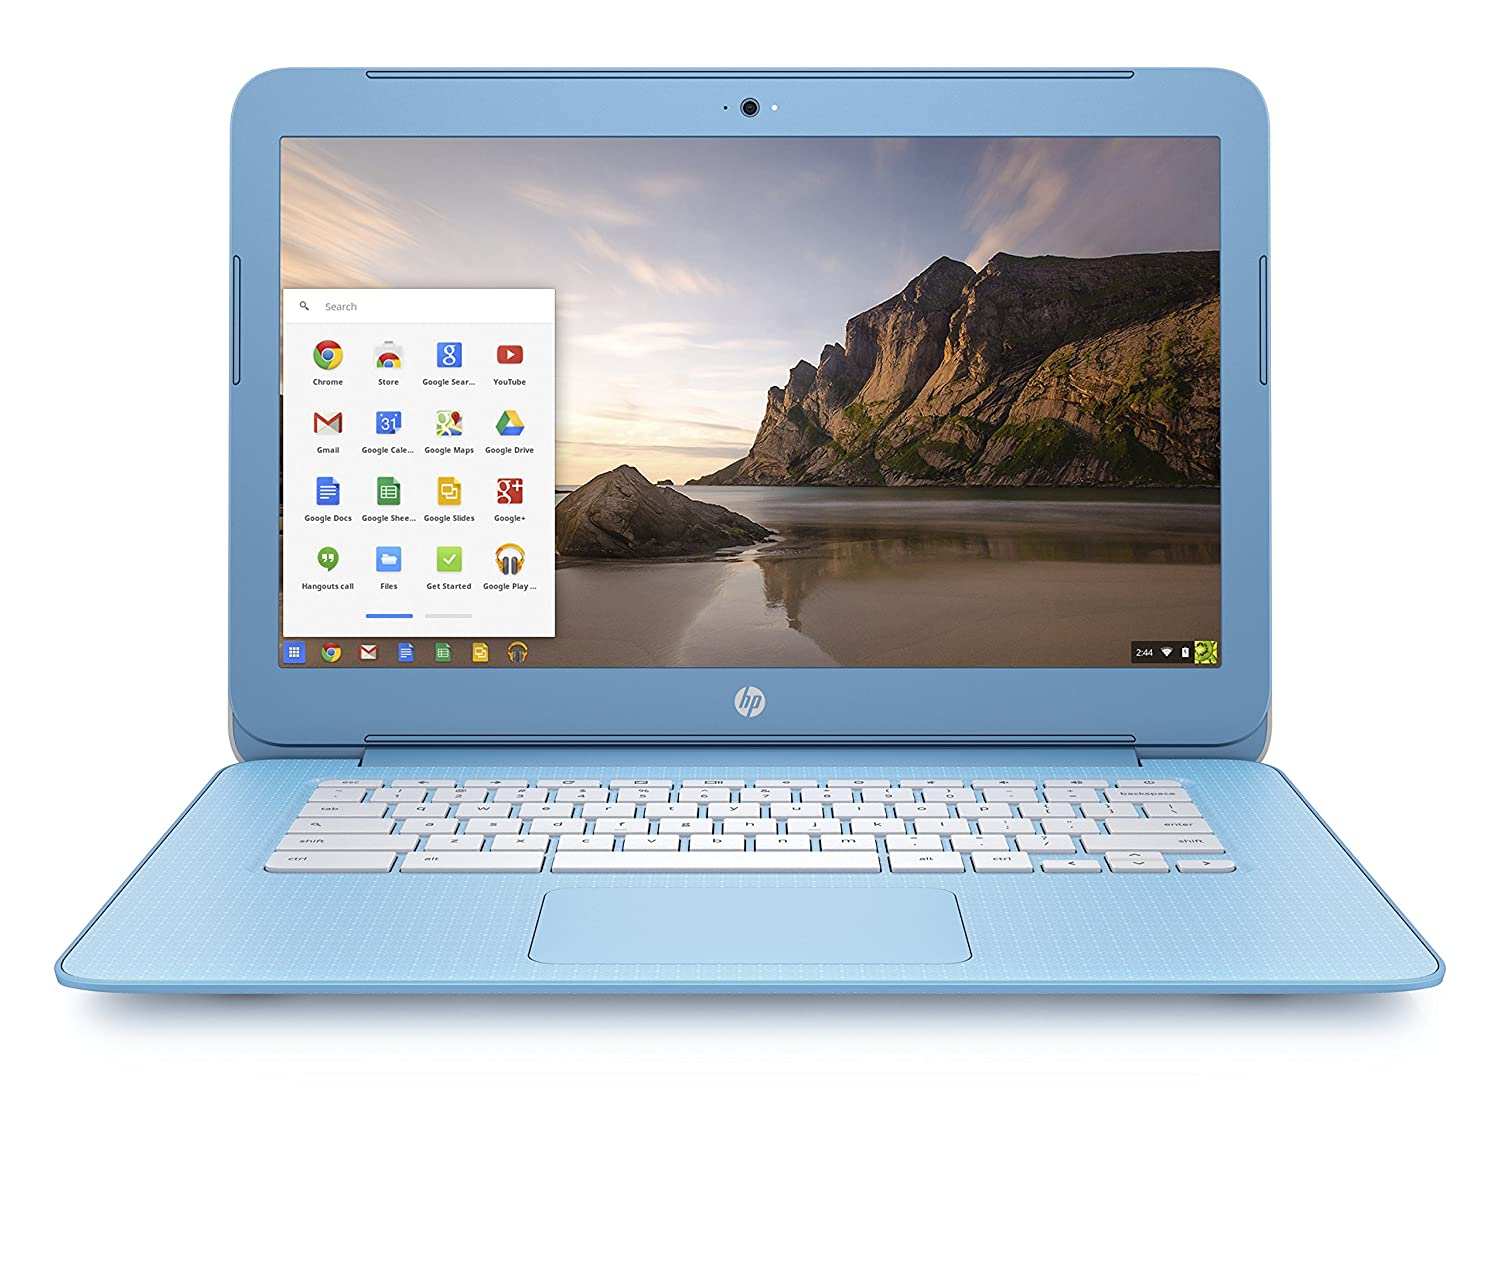 The HP Chromebook 14 has a big screen for an affordable price.